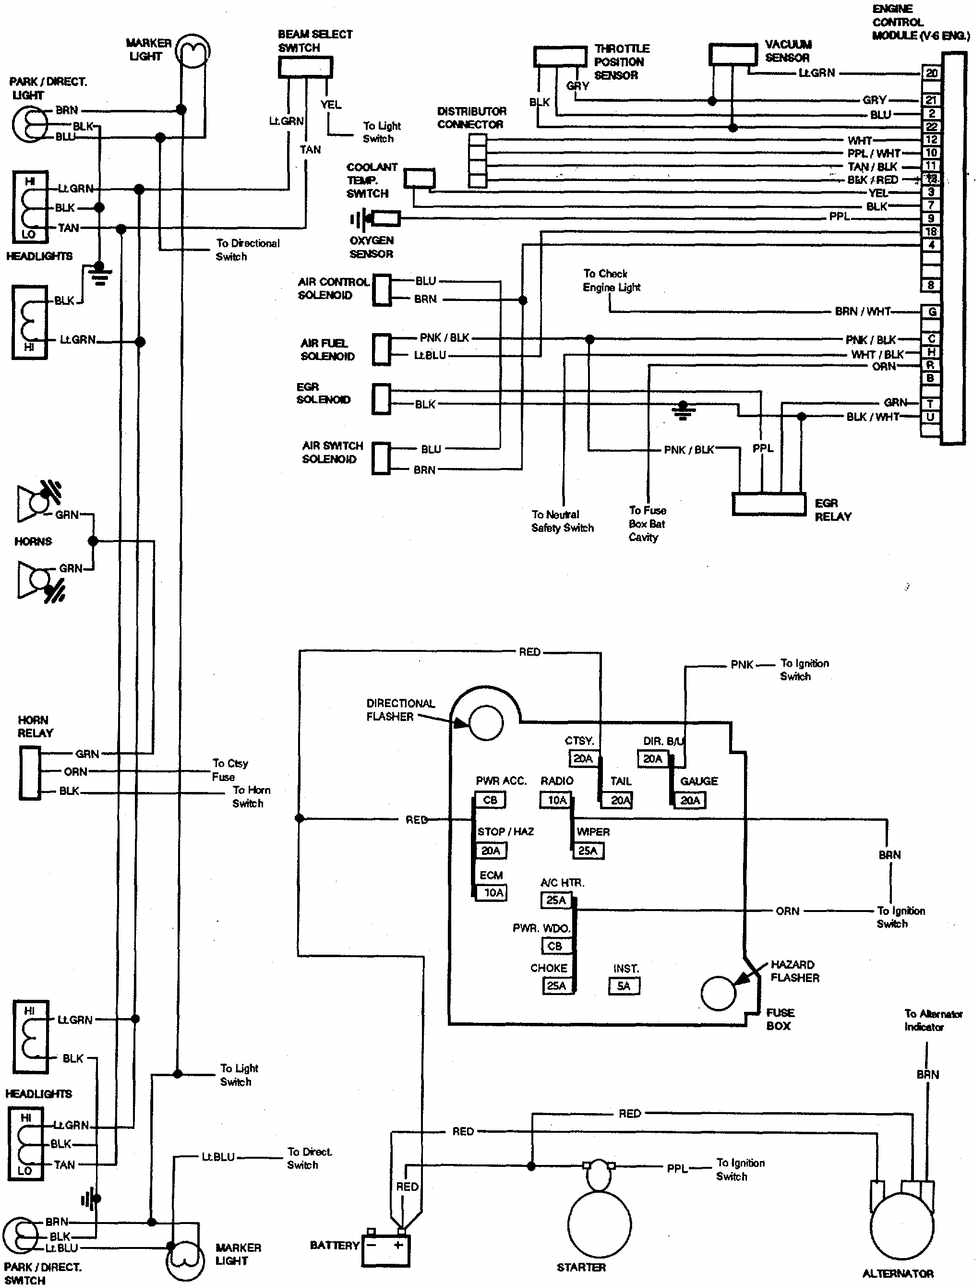 Chevrolet V8 Trucks 1981 1987 on gm wiring diagrams 97 tahoe